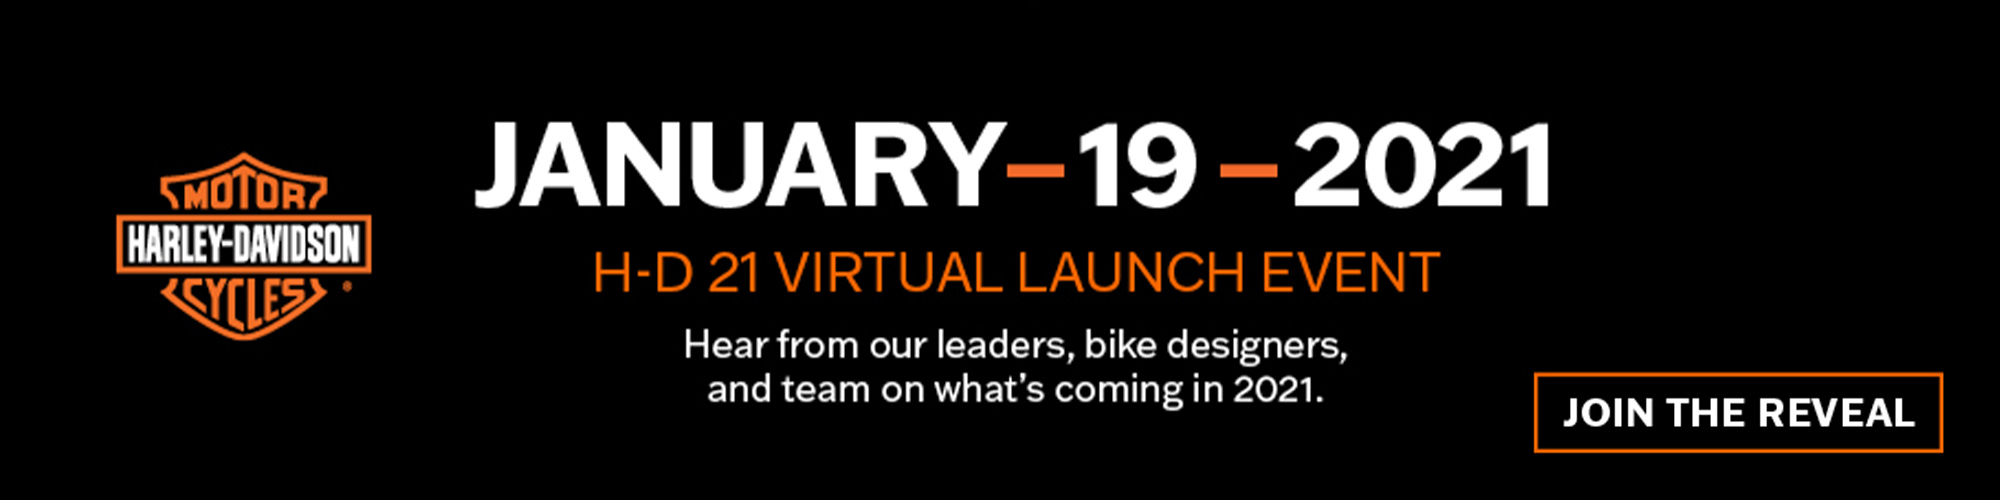 Harley-Davidson 2021 Virtual Product Launch Event